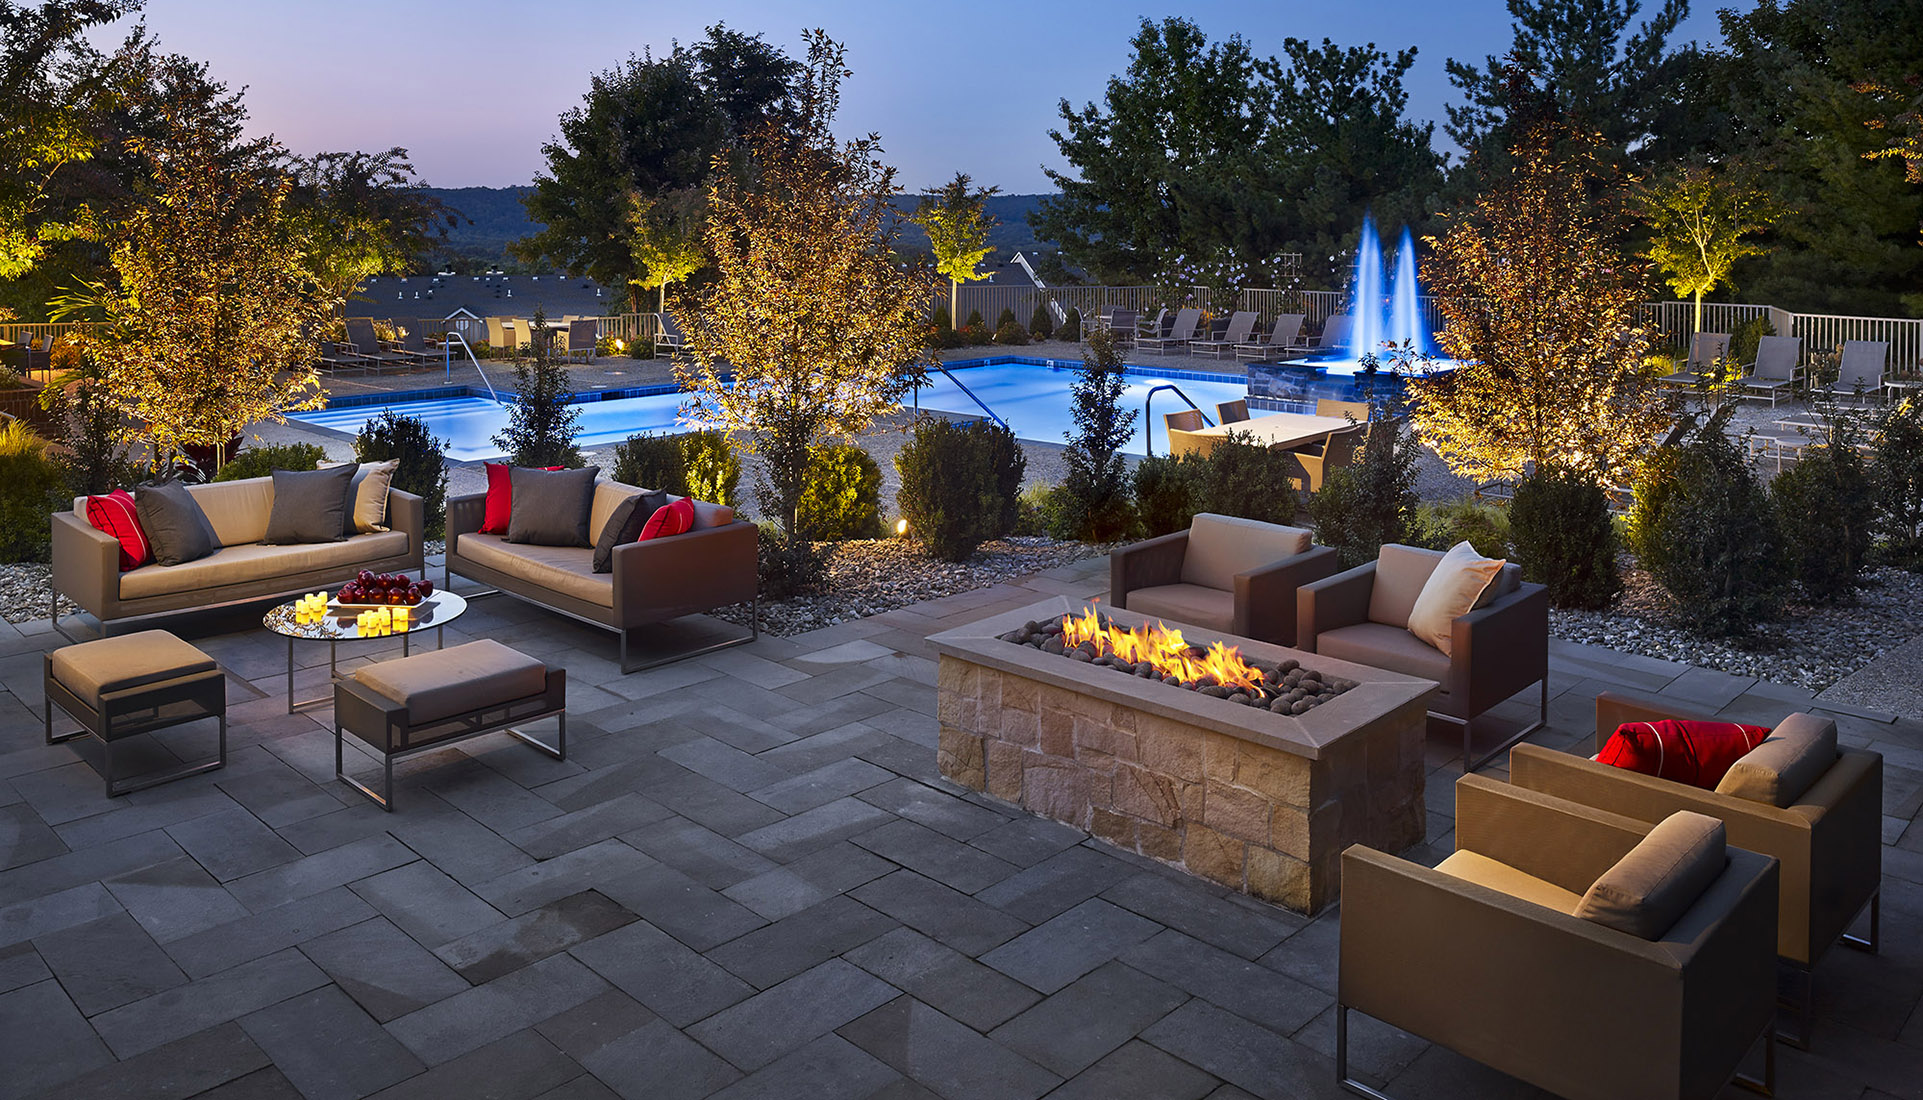 AVE Malvern's courtyard at dusk with exterior chairs, a firepit, and a pool